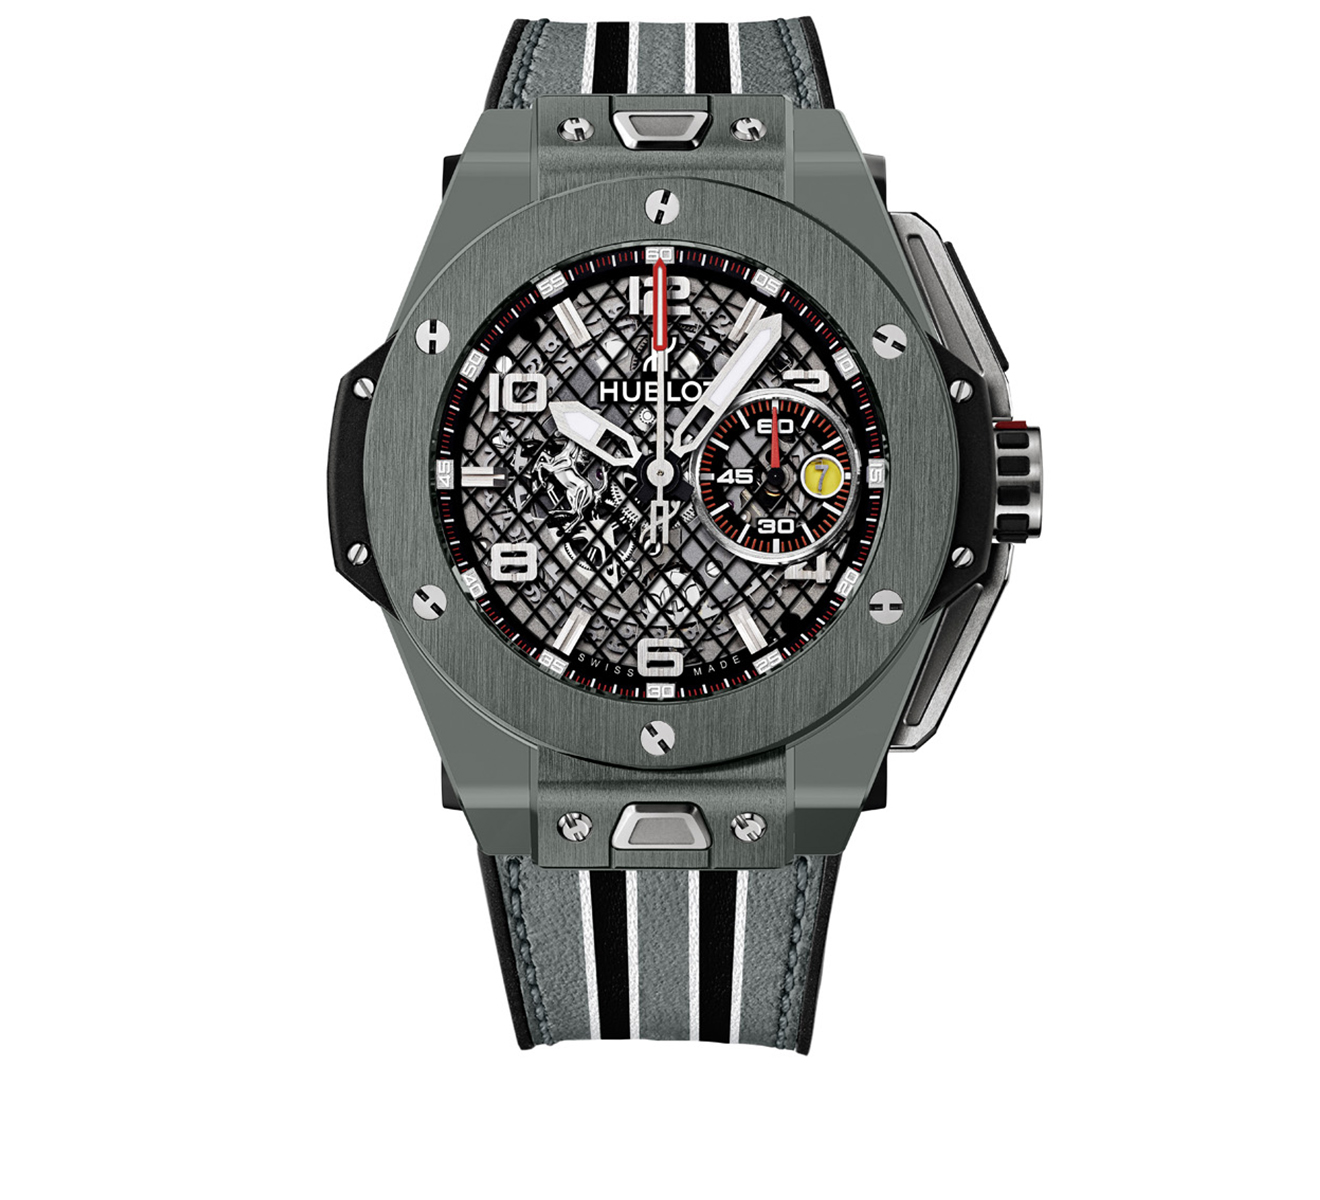 Часы Ferrari Speciale Grey Ceramic HUBLOT Big Bang 401.FX.1123.VR - фото 1 – Mercury